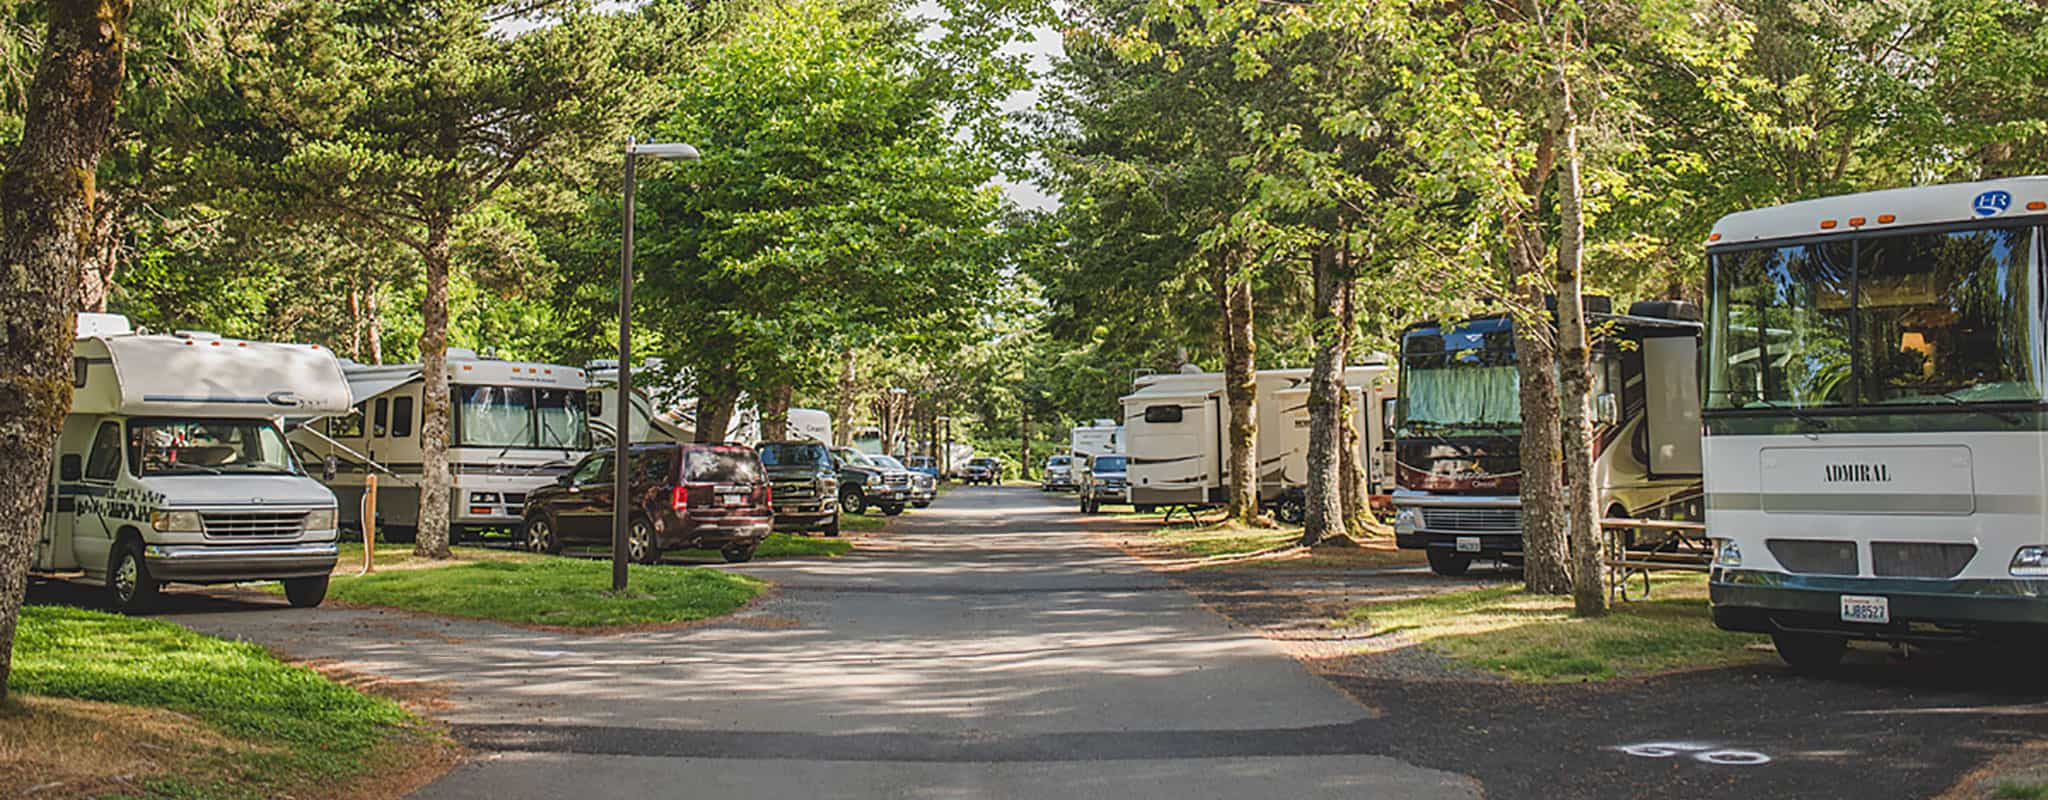 Area & Amenities - Cannon Beach RV Resort